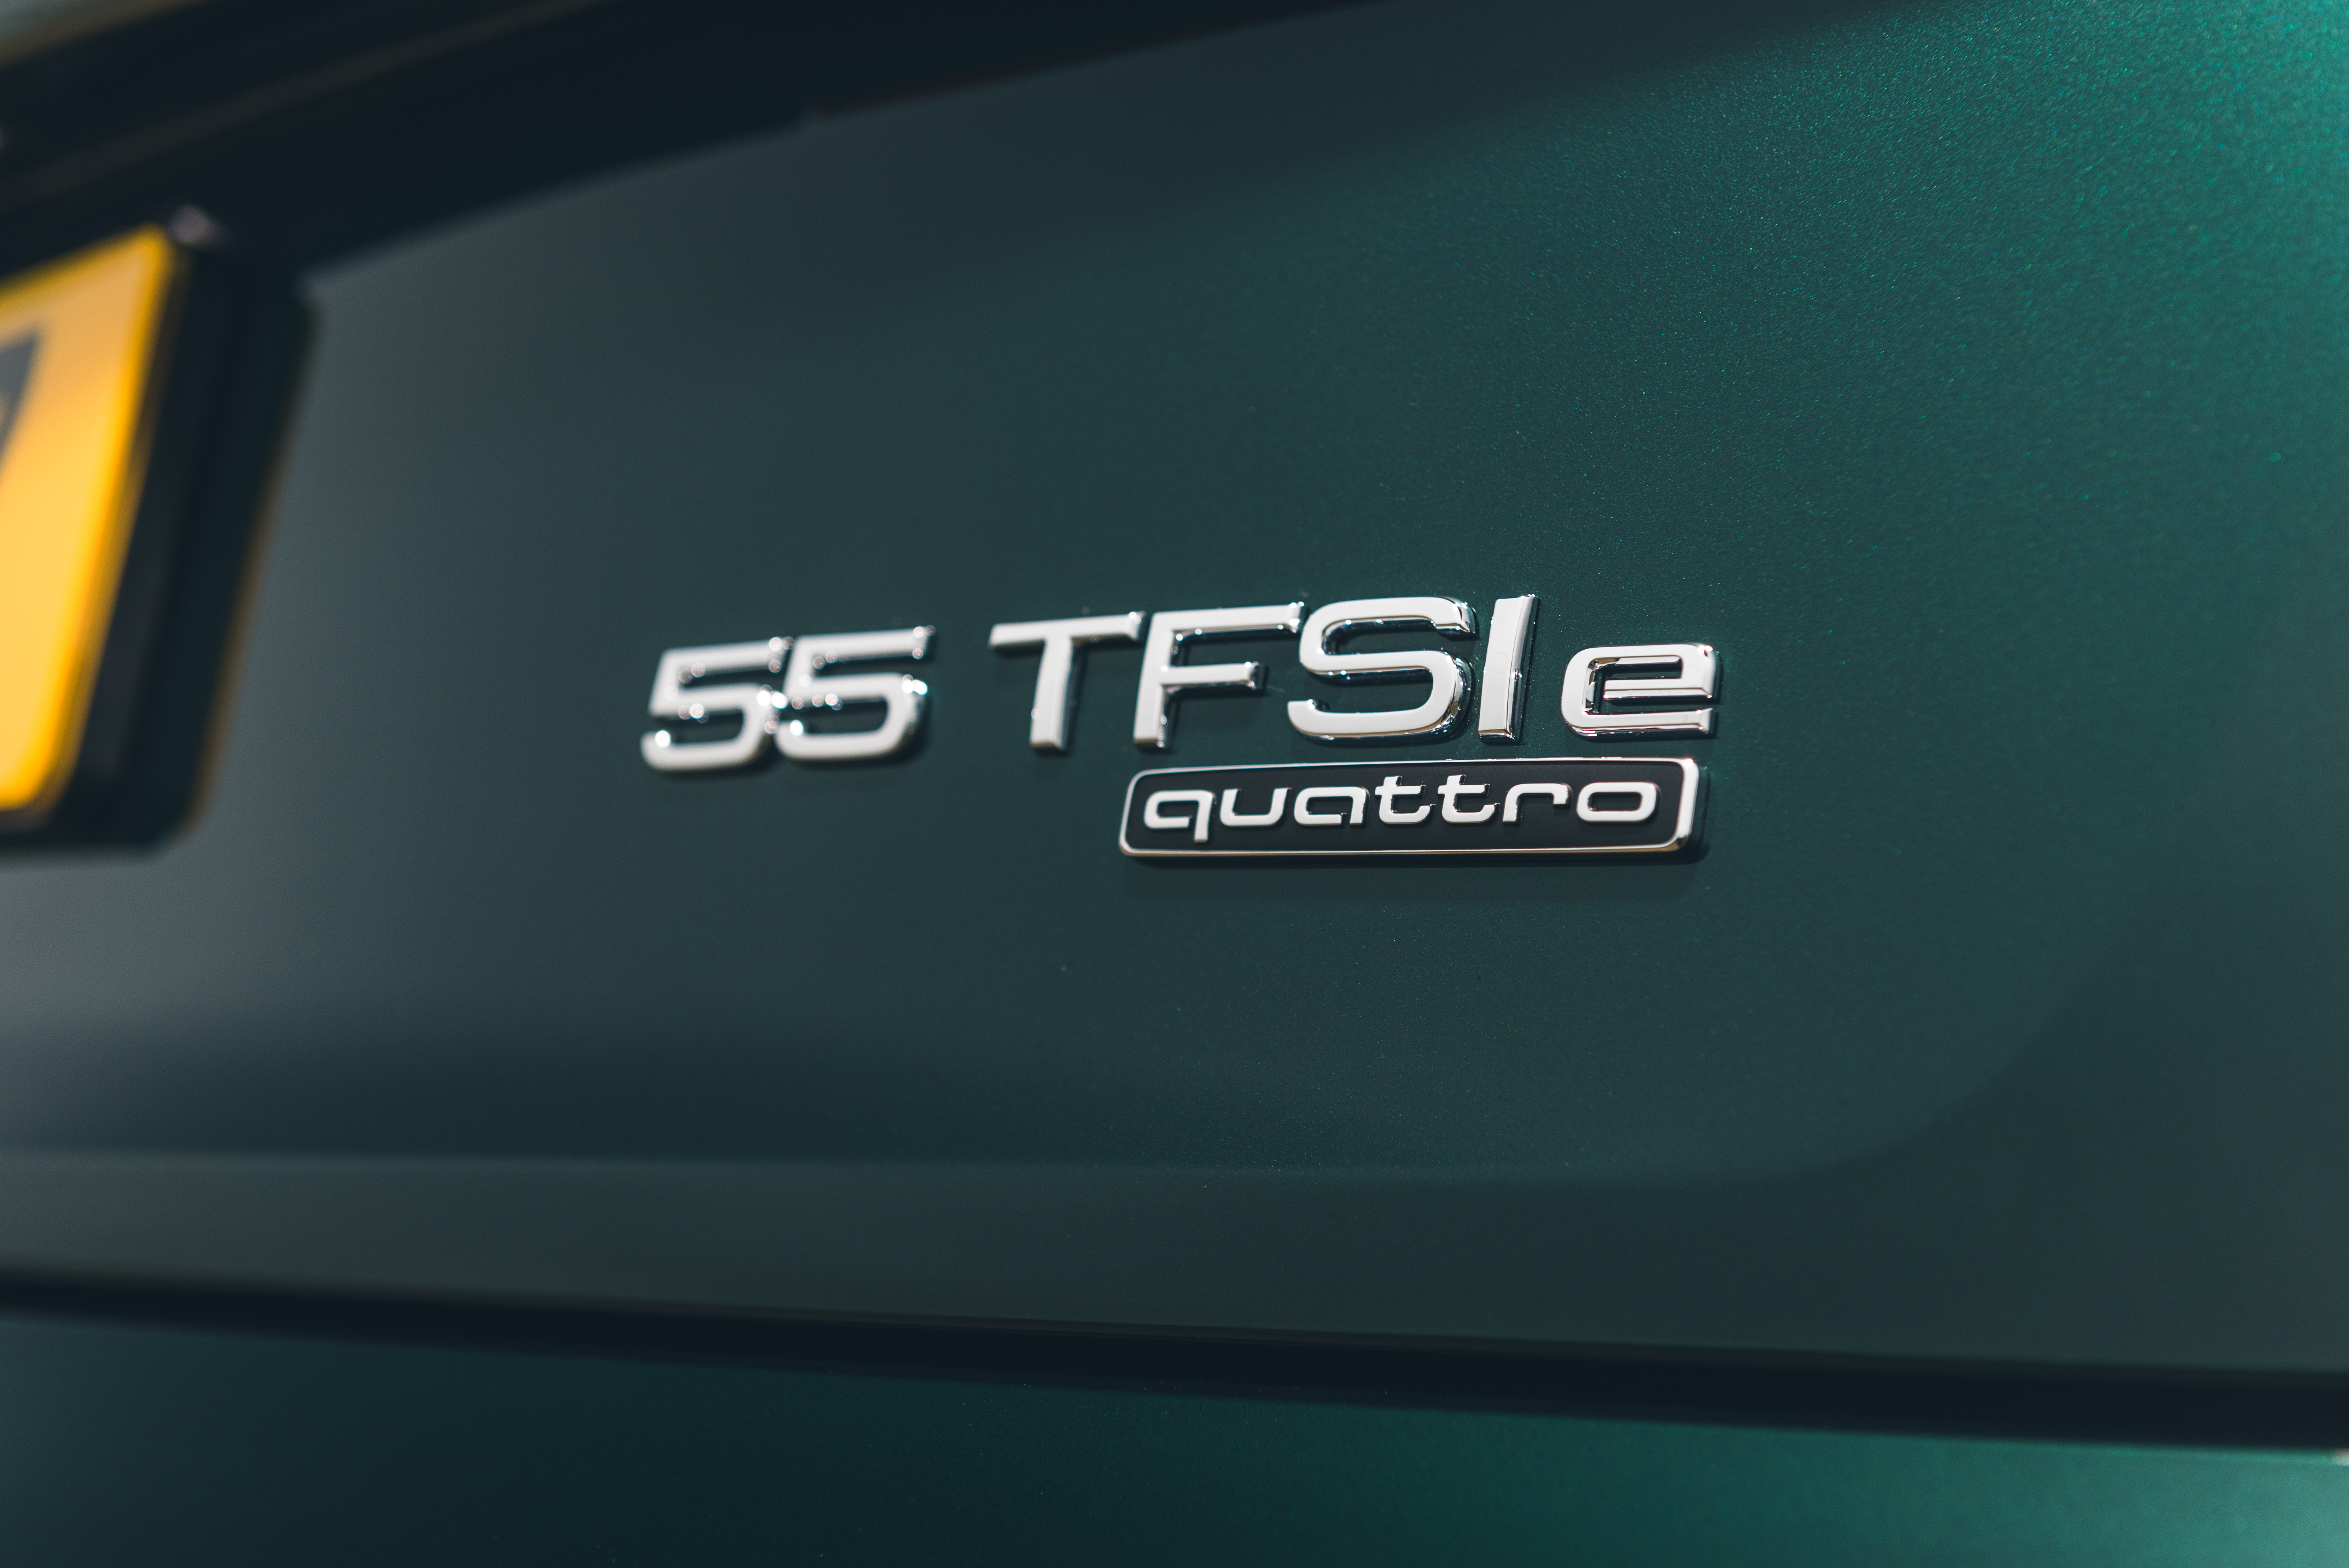 The 'e' lettering denotes the hybrid powertrain